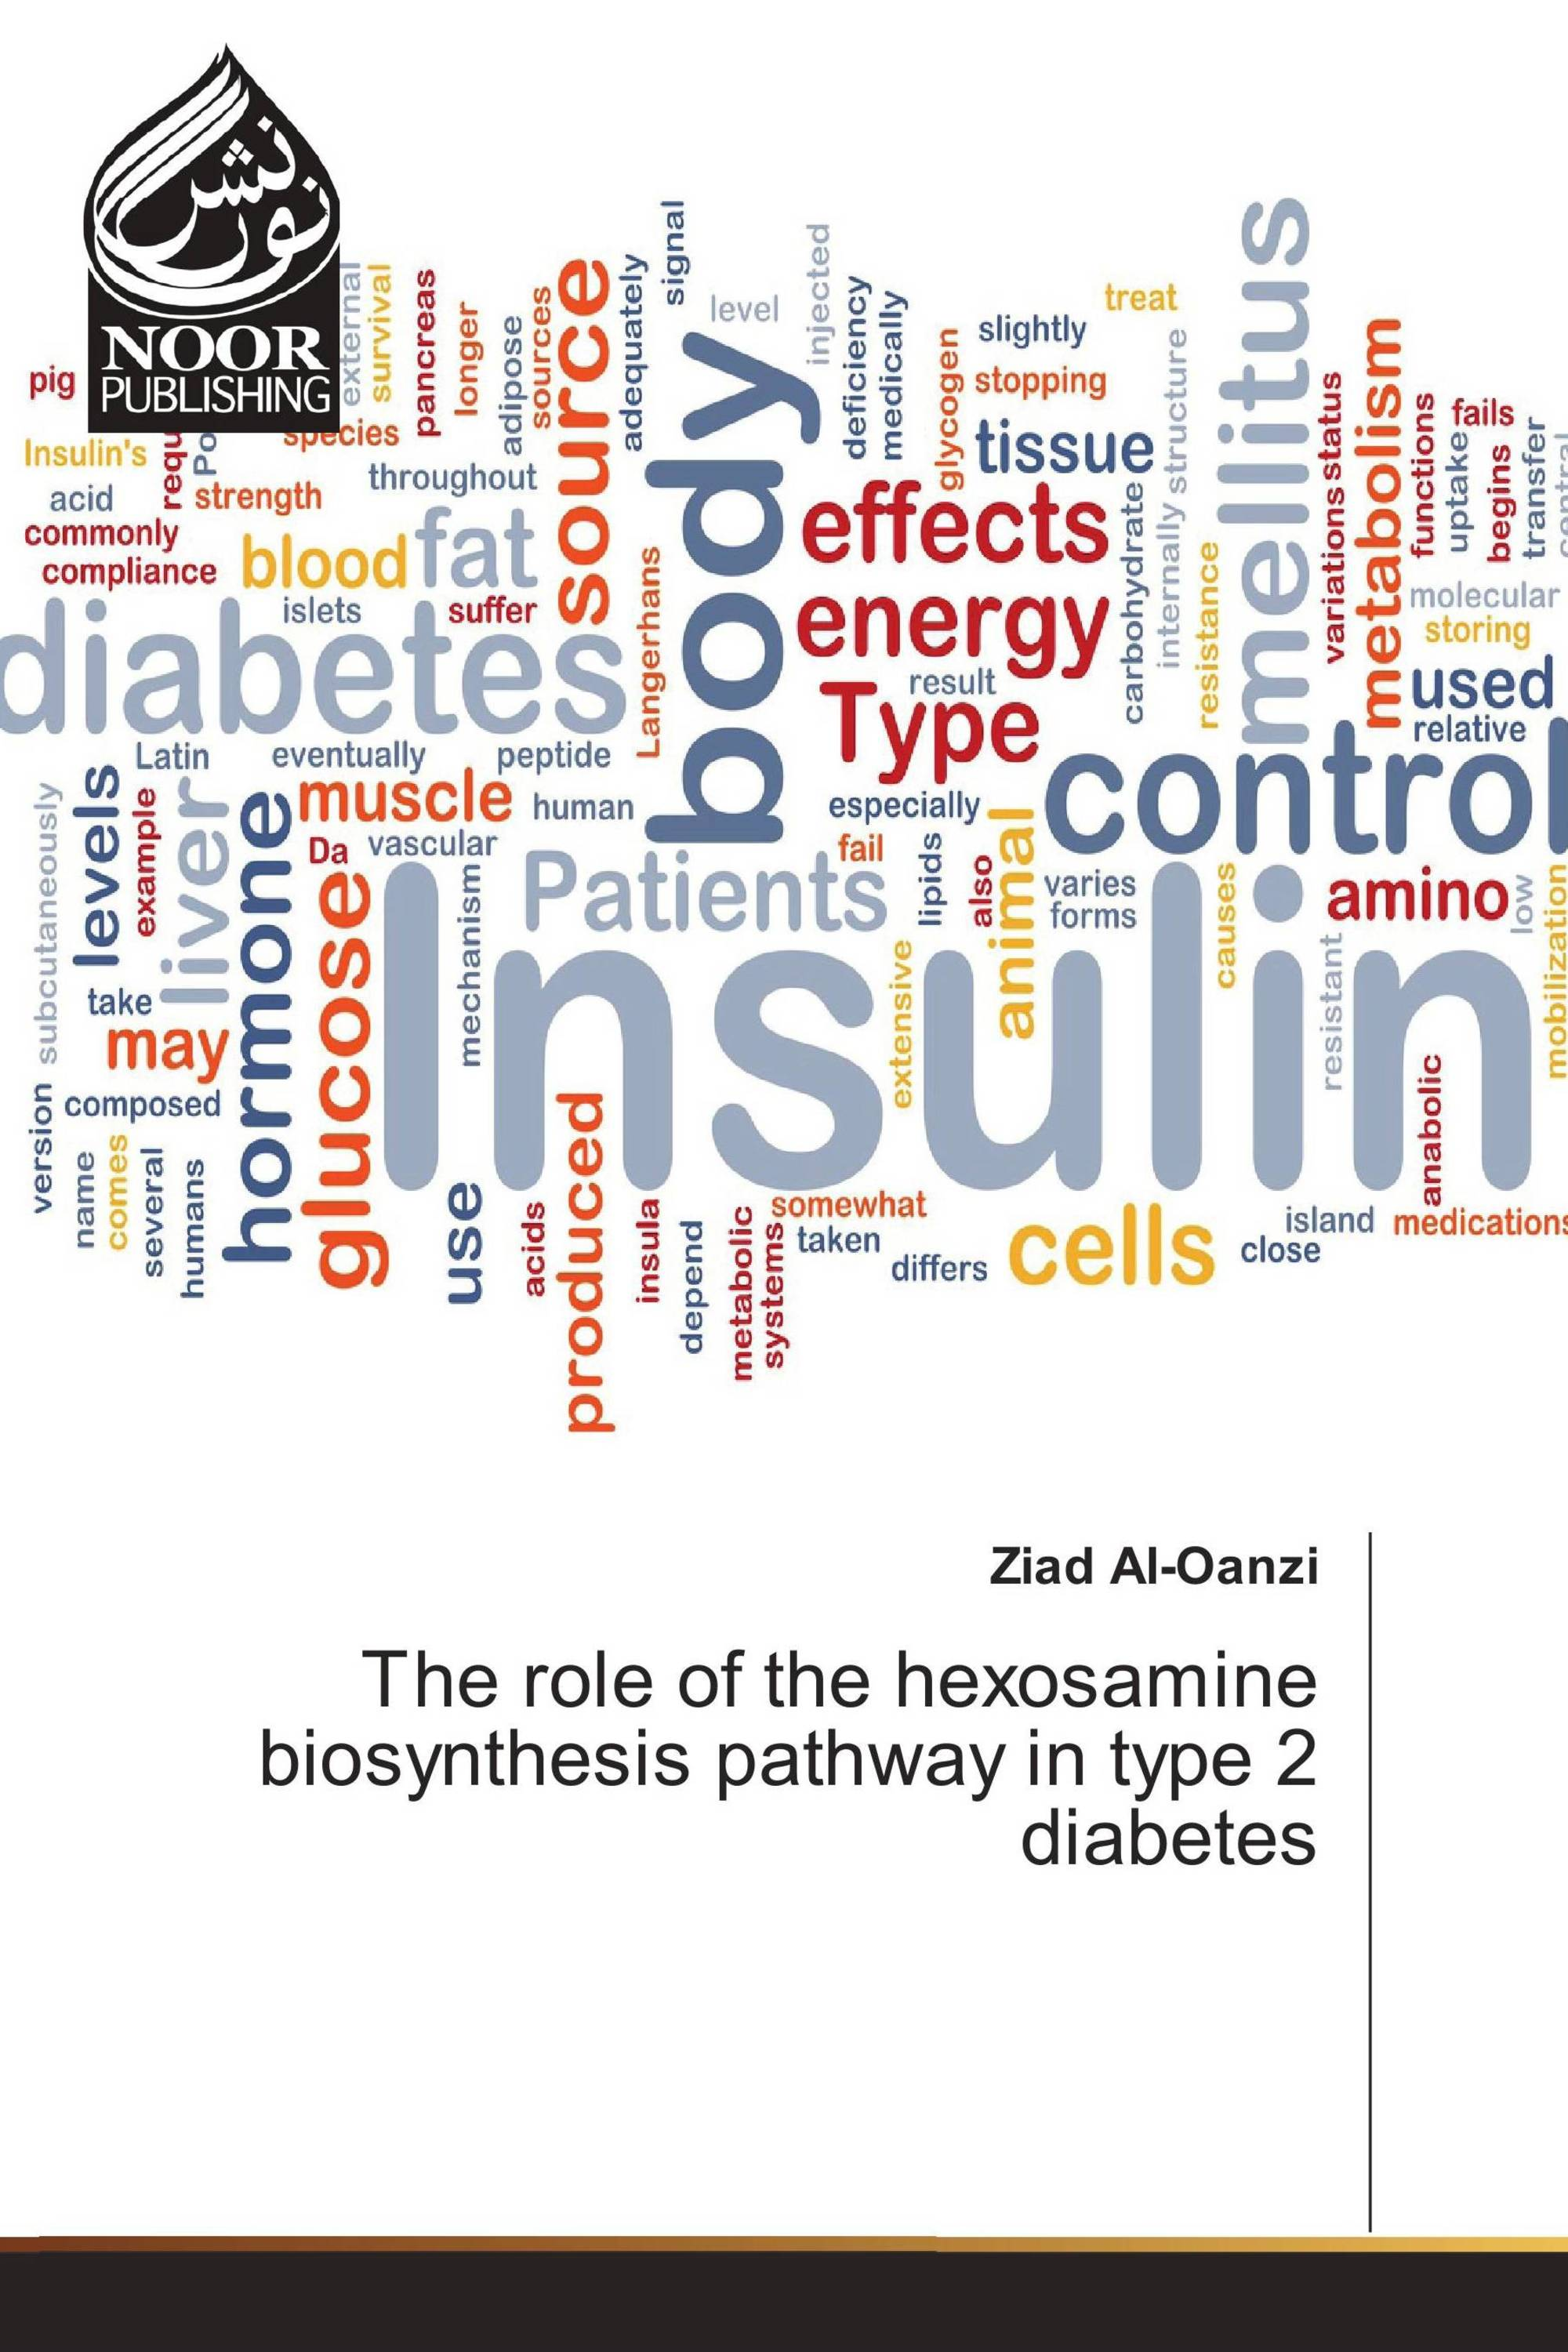 The role of the hexosamine biosynthesis pathway in type 2 diabetes